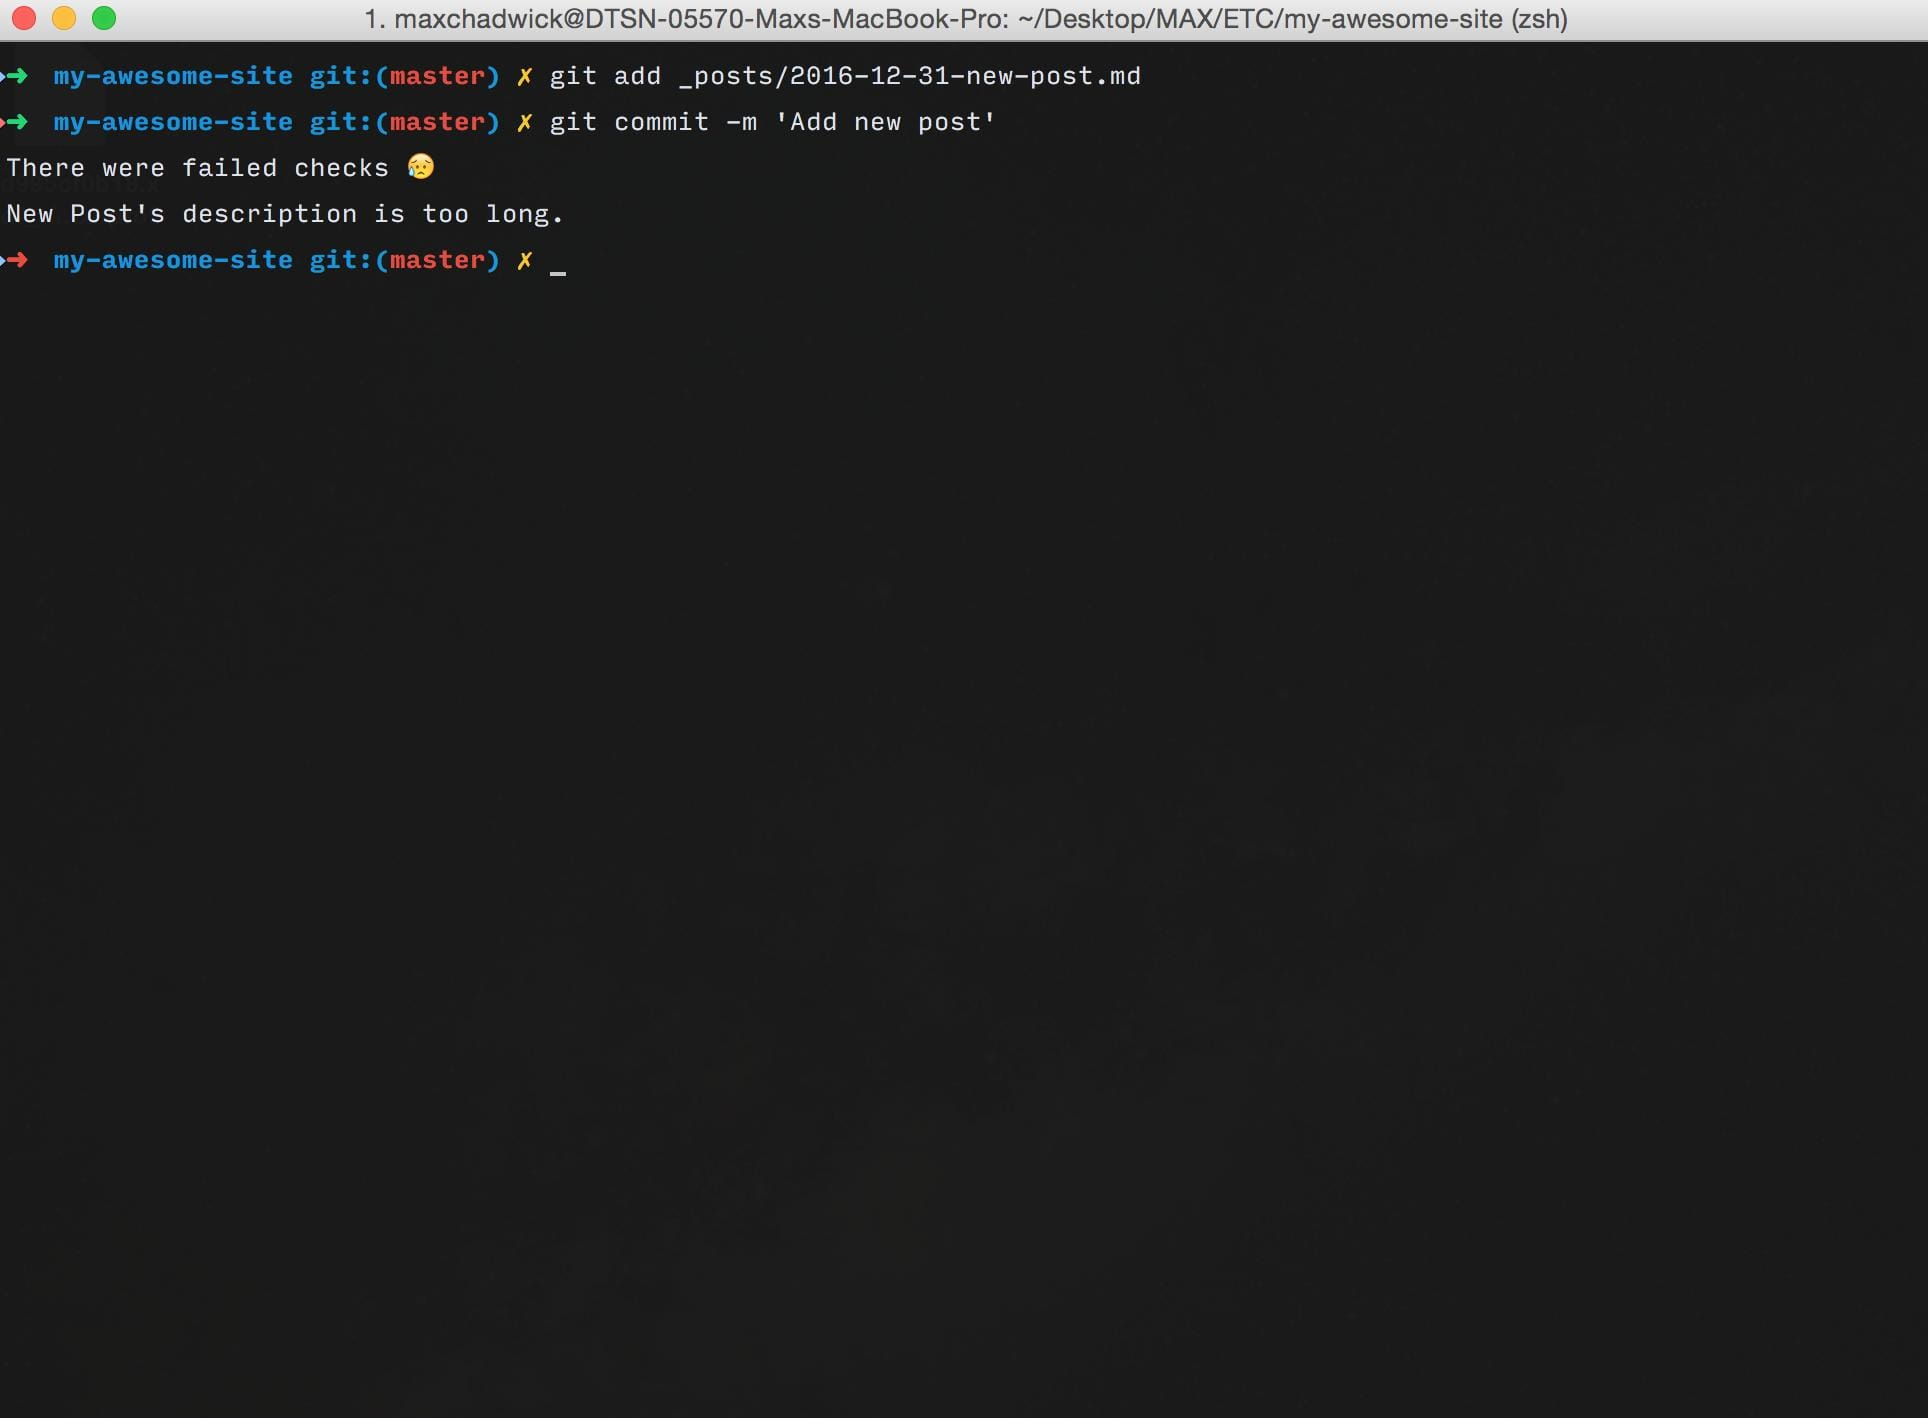 A screenshot of a terminal while using jekyll-pre-commit